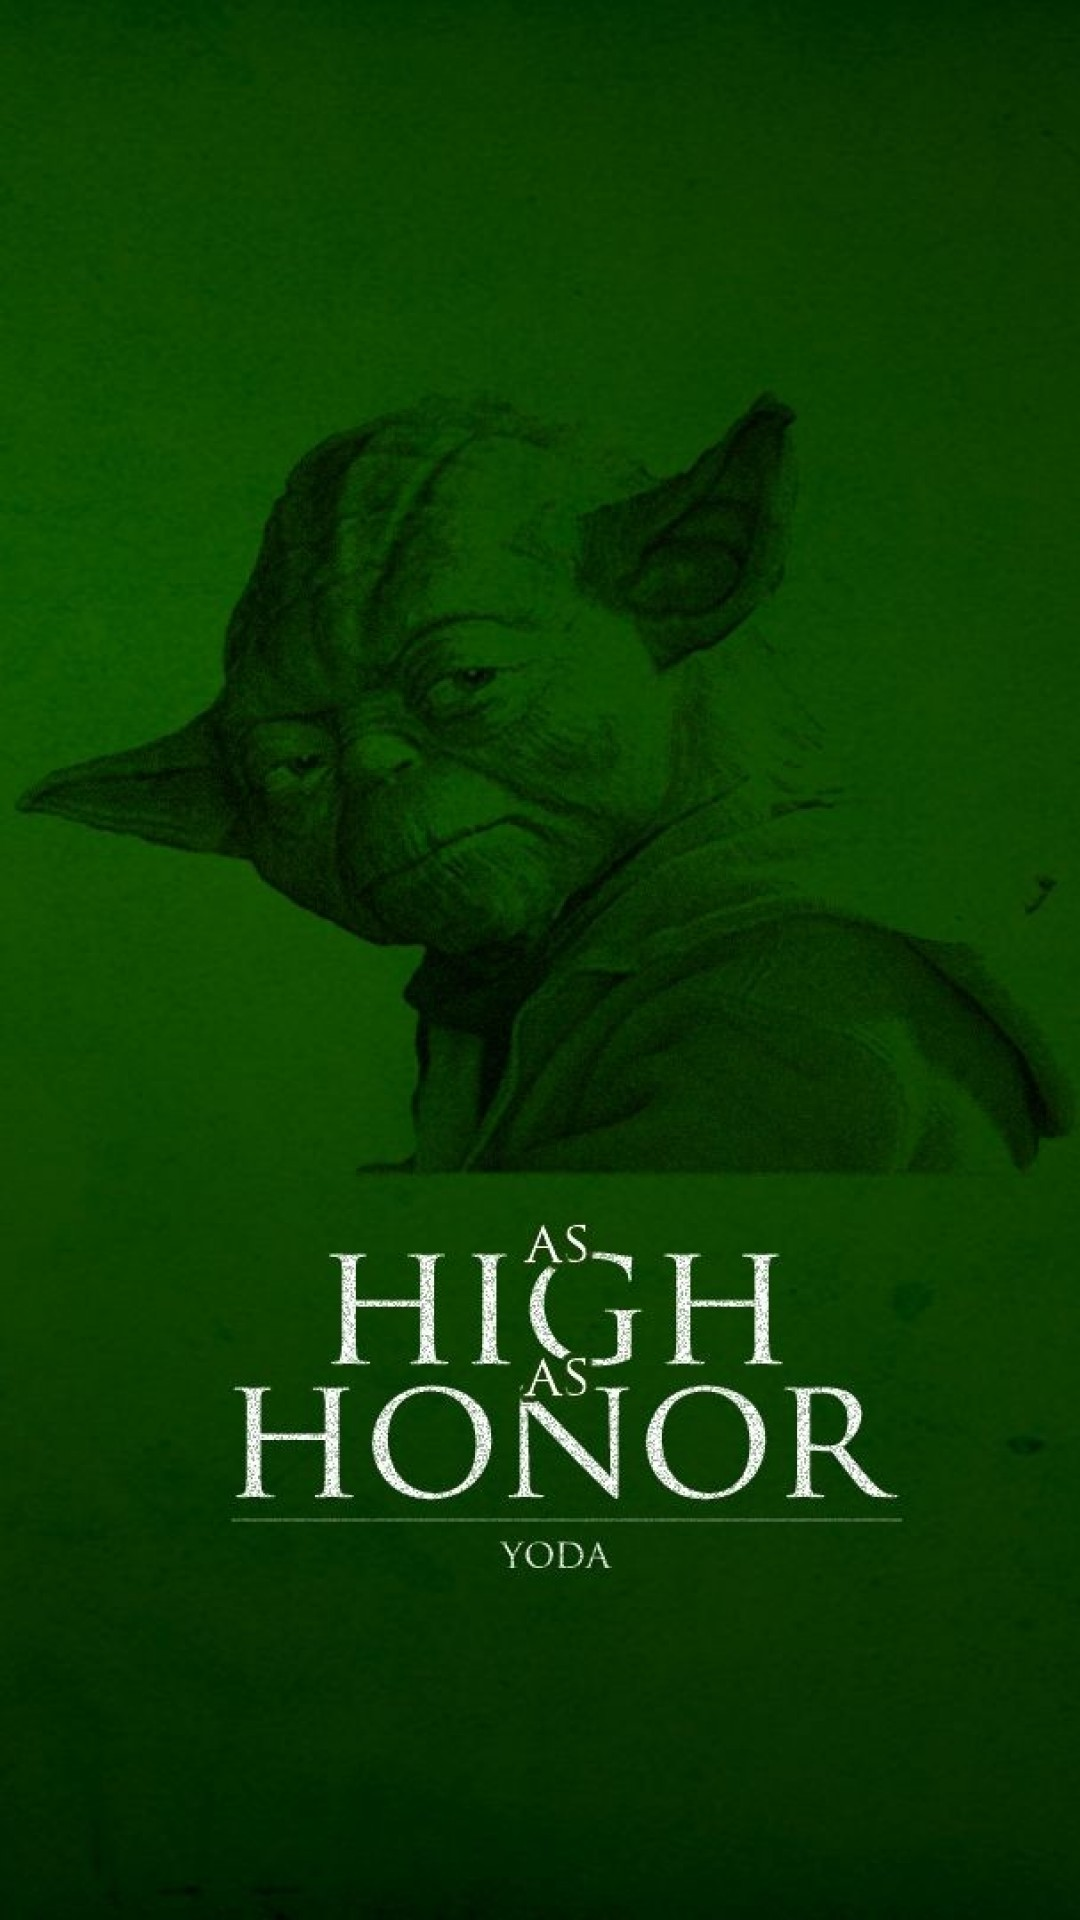 Yoda Wallpaper Star Wars photos of Epic Star Wars Iphone Wallpaper 1080x1920